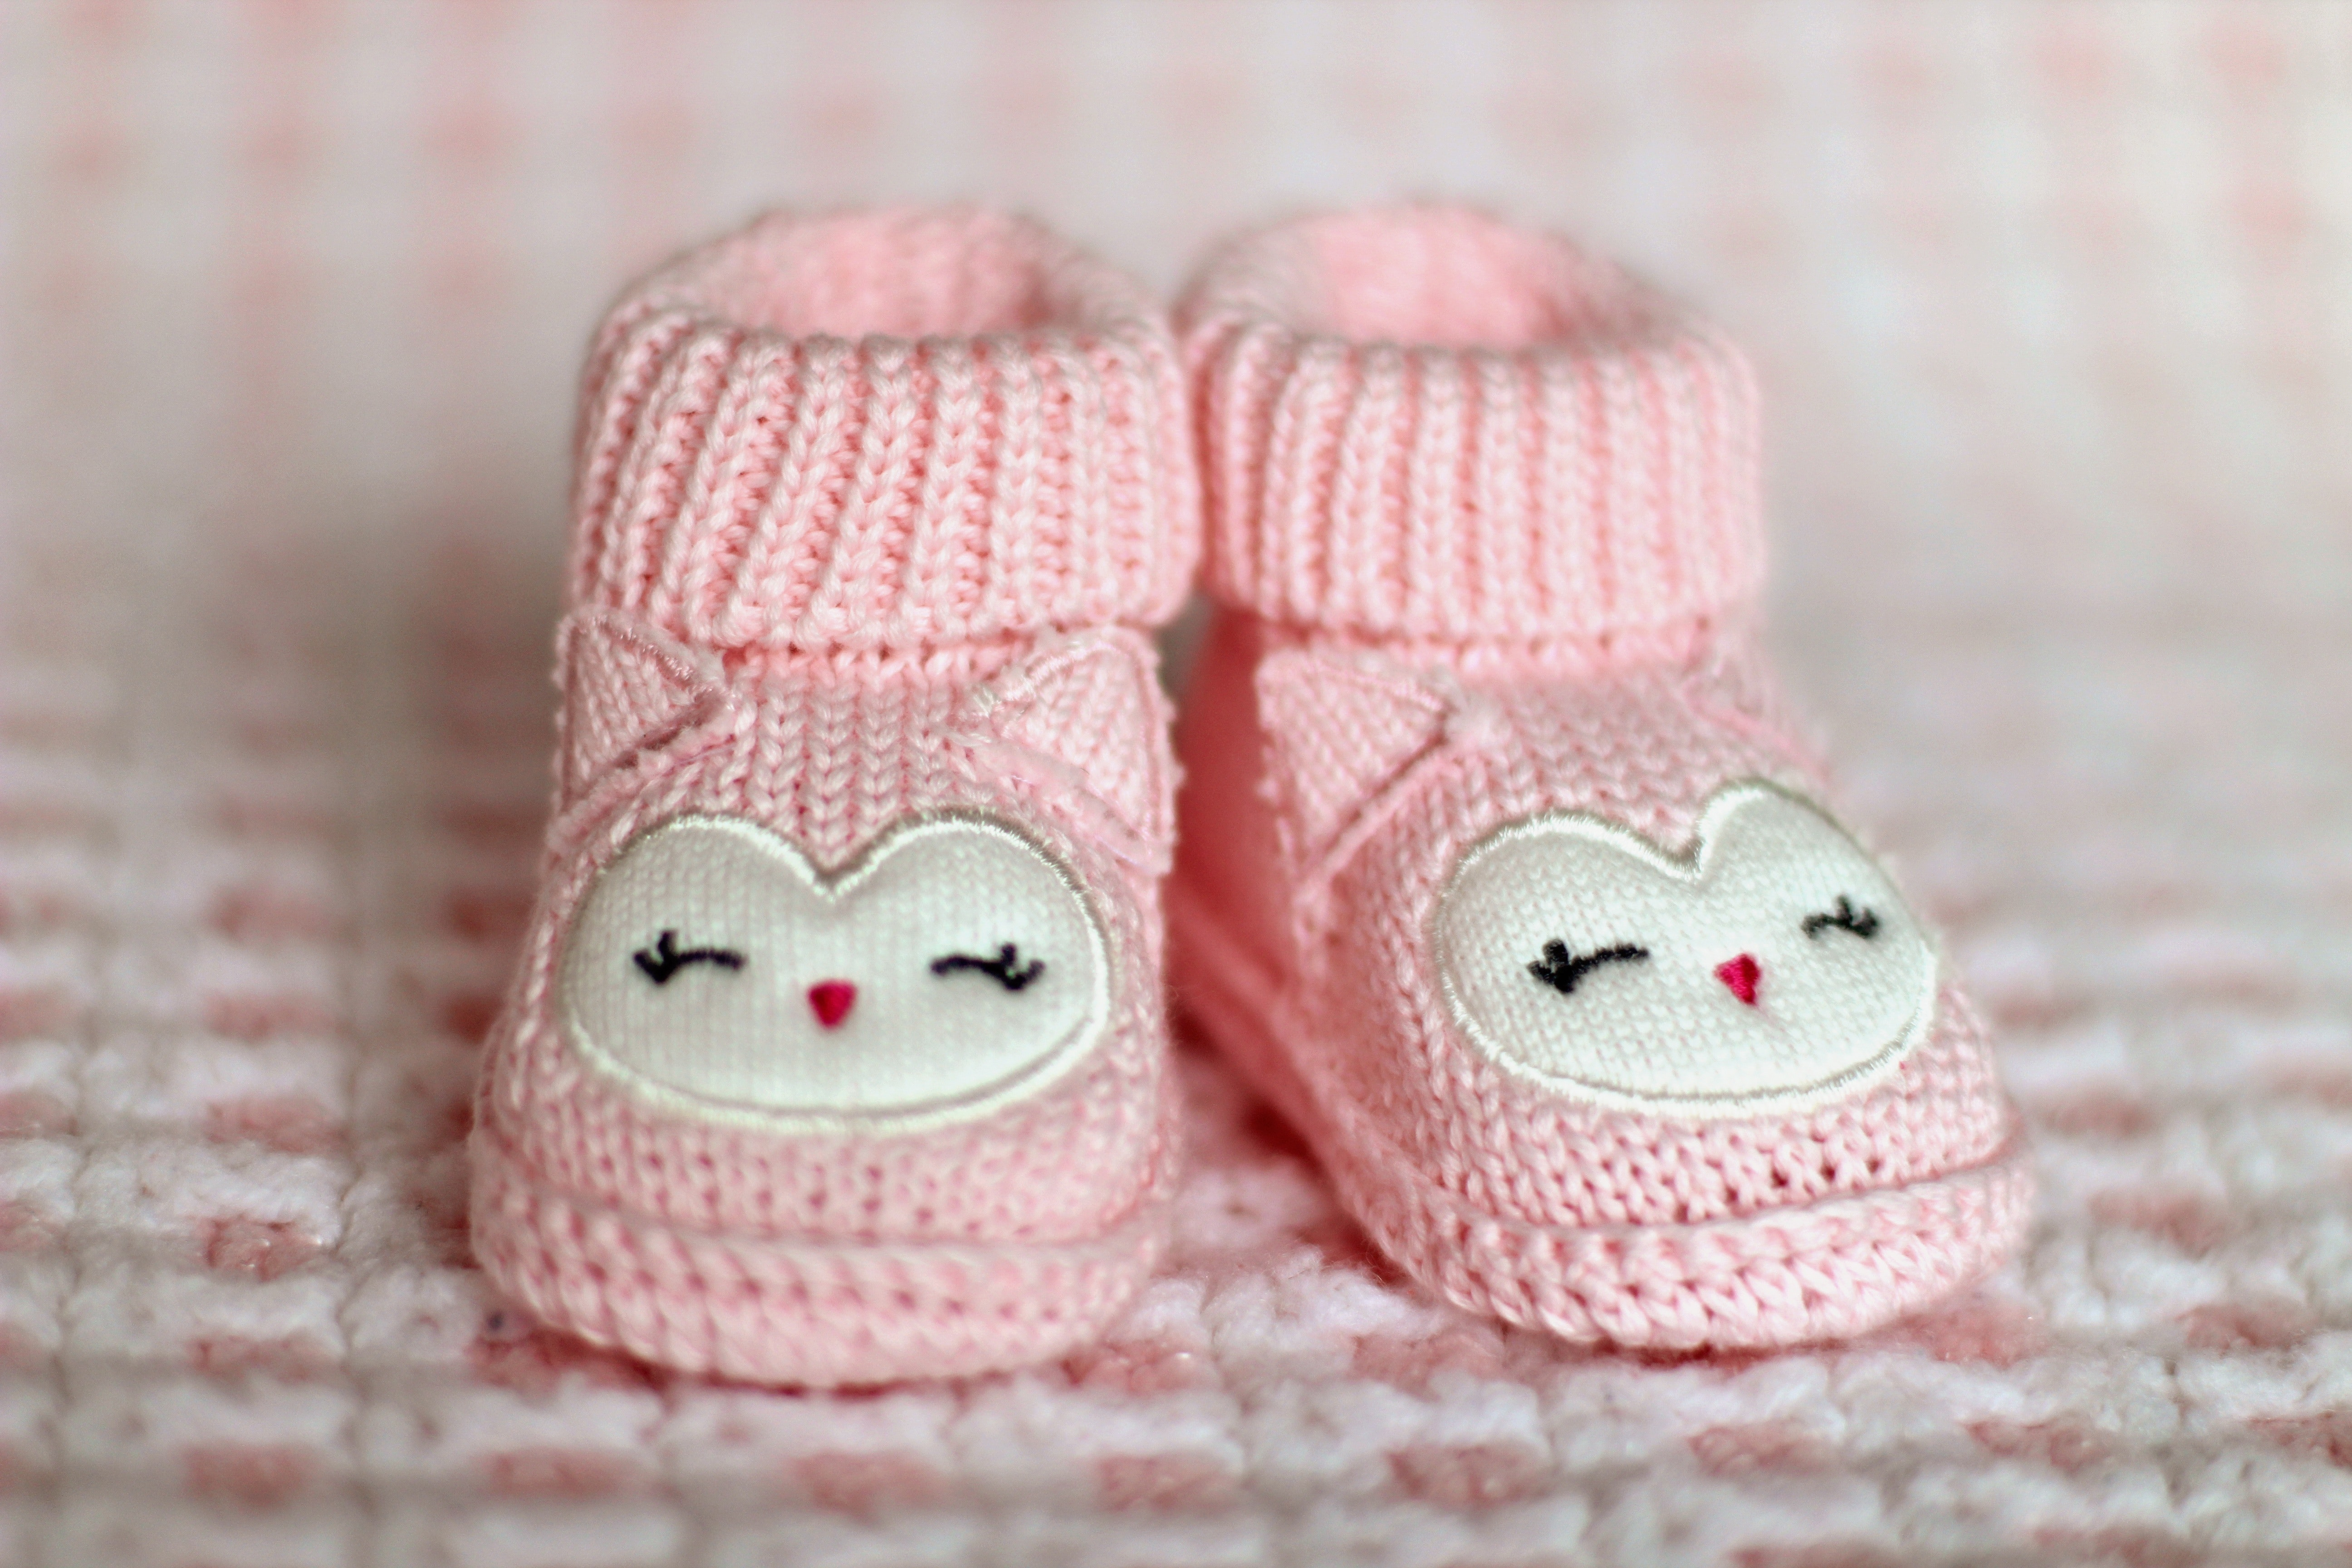 Free stock photos of baby shoes · Pexels